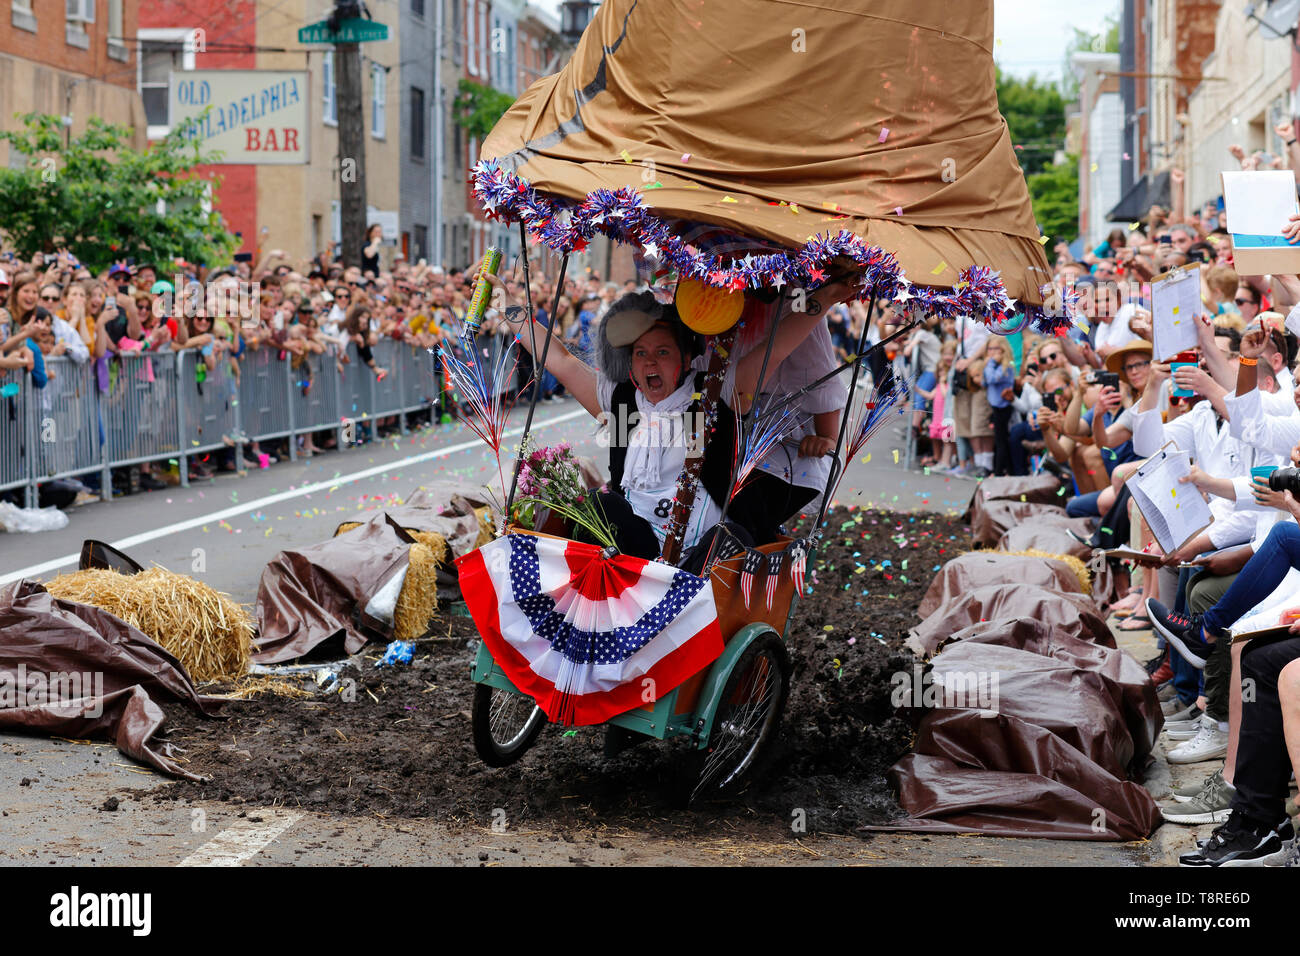 participants-near-the-finish-of-an-obstacle-course-as-their-art-bike-collapses-underneath-them-the-2019-kensington-kinetic-sculpture-derby-in-philadel-T8RE6D.jpg